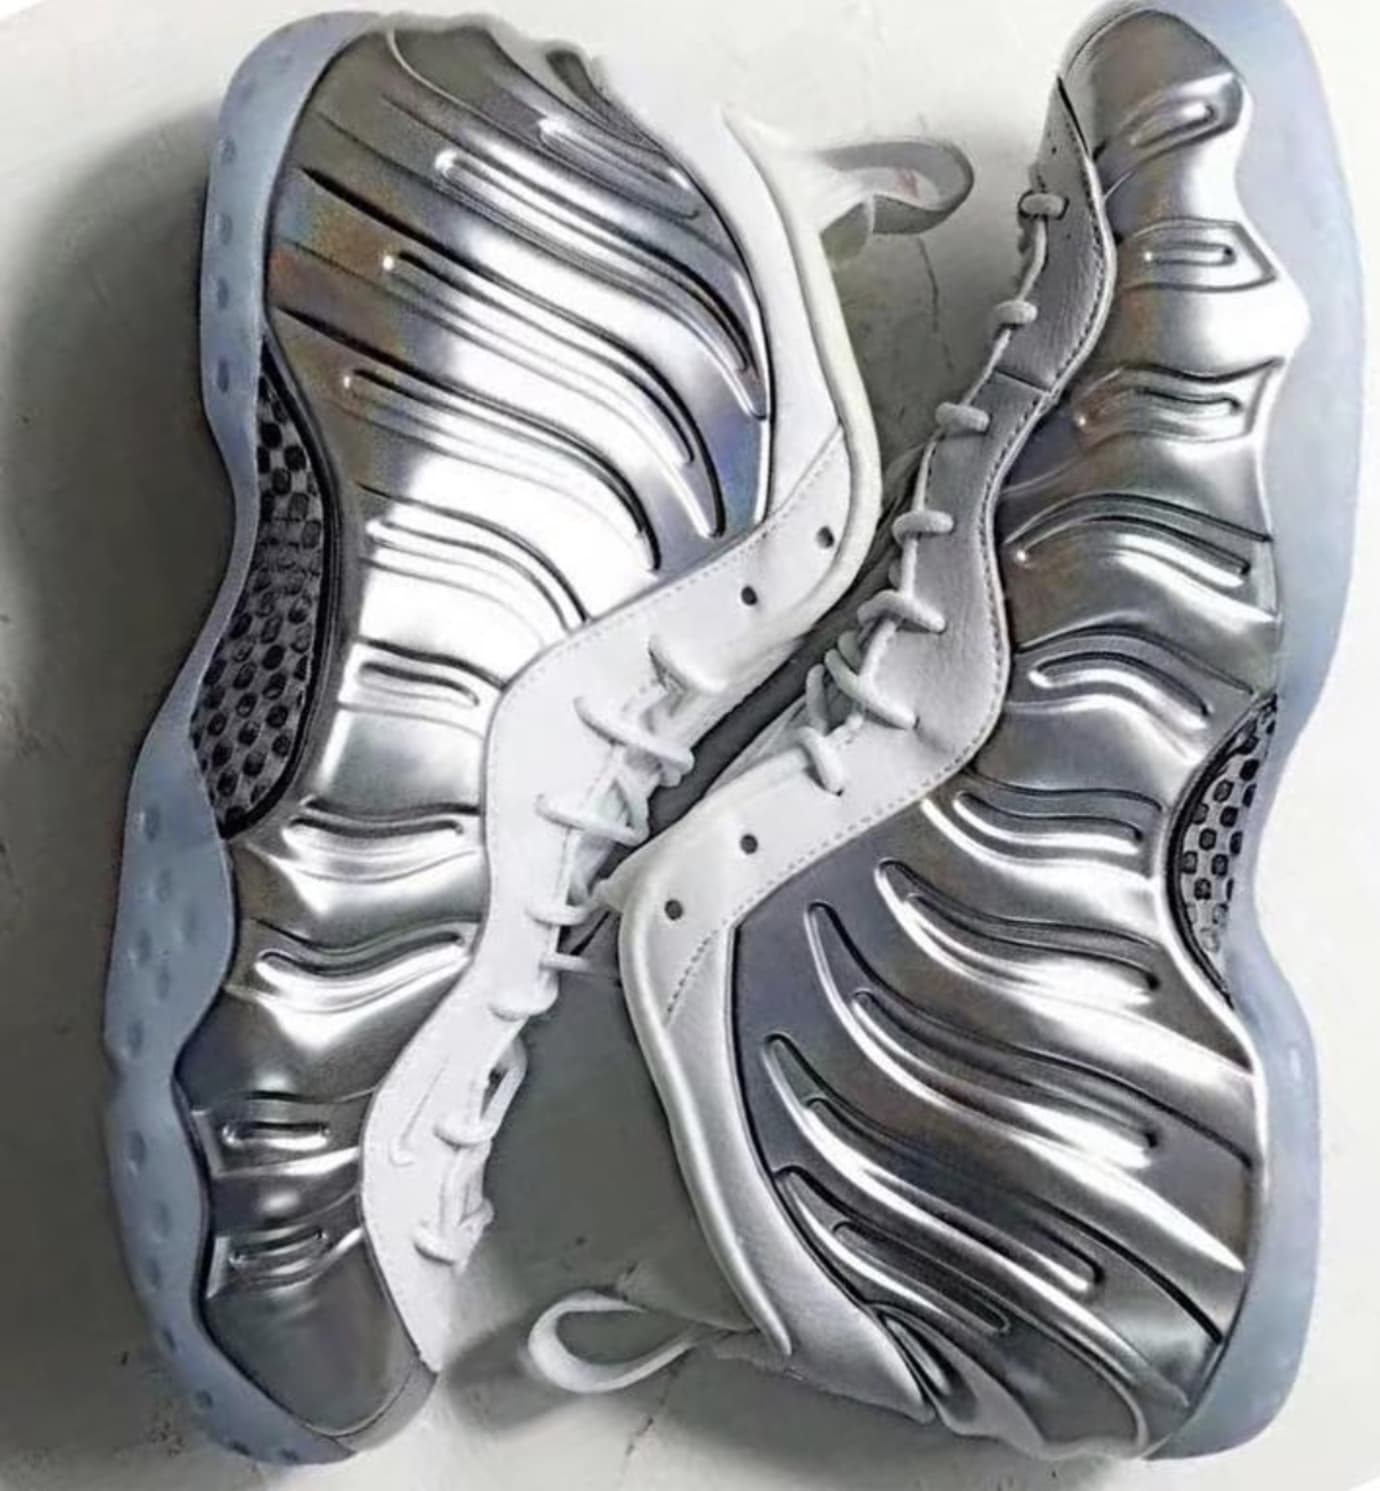 62ed26fe9b857 Image via zsneakerheadz · Nike Air Foamposite One WMNS  Chrome  (Pair 2)